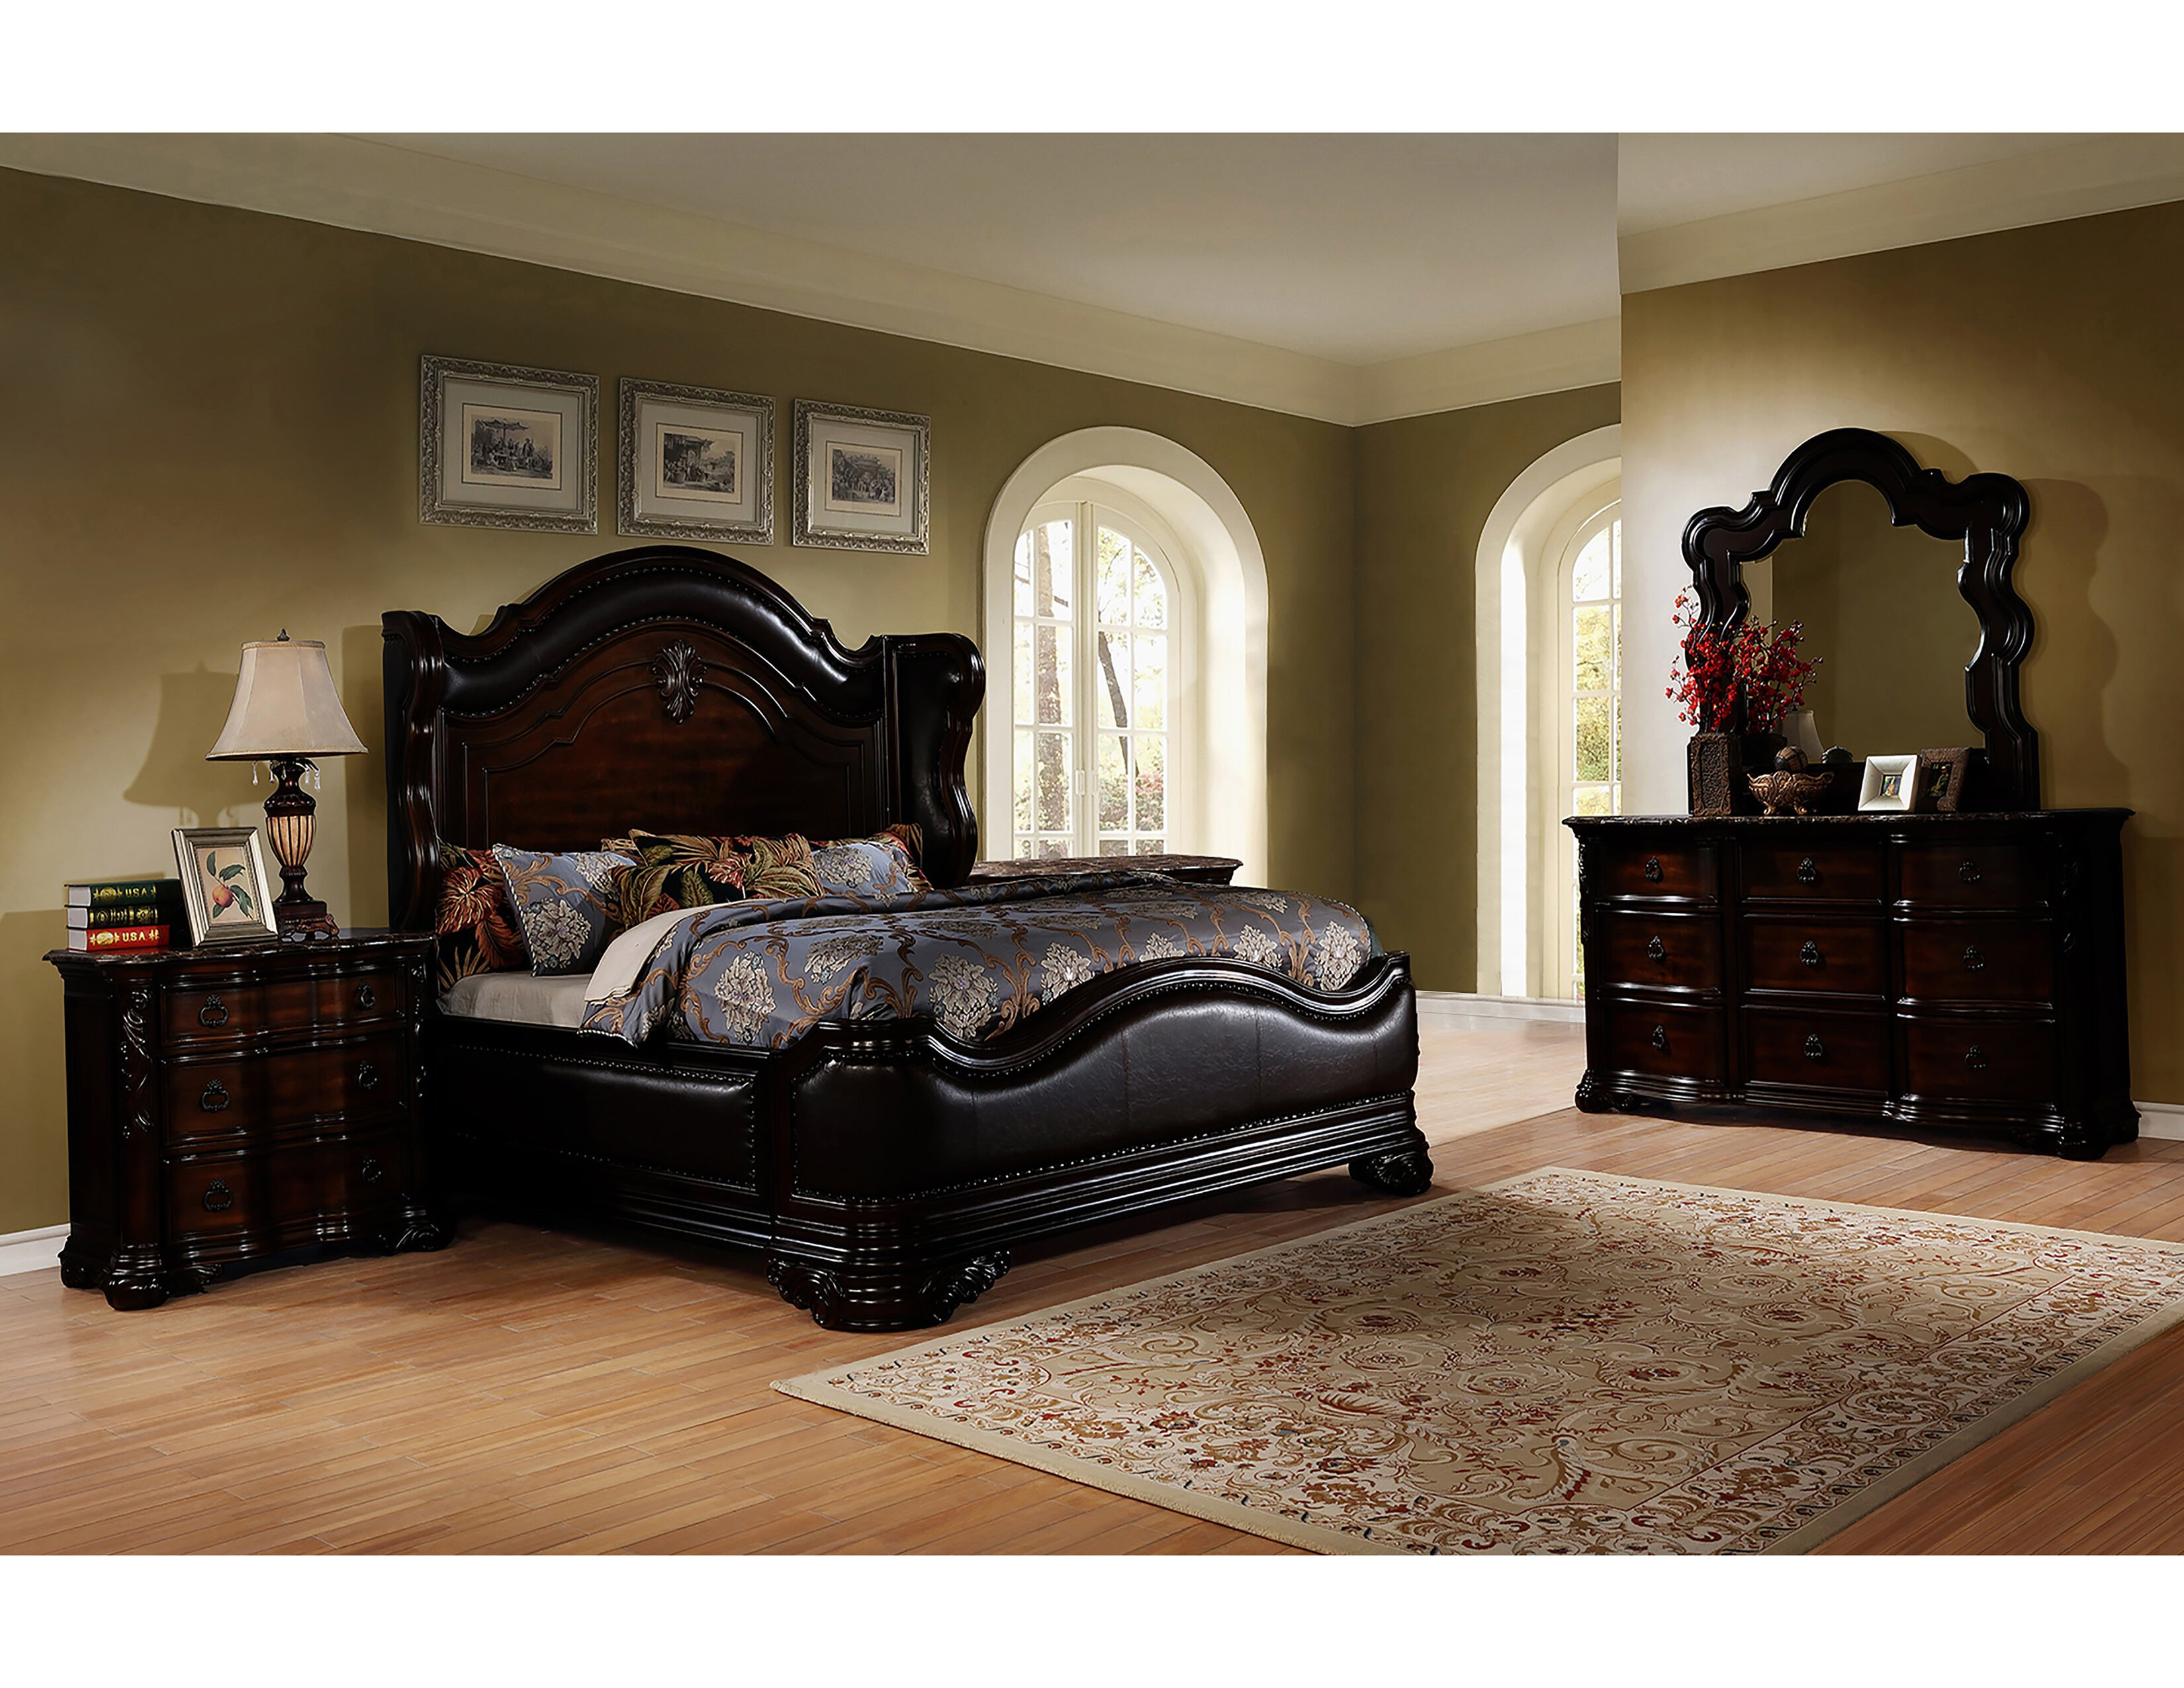 King Size Bedroom Set Cheap New Ayan Standard 5 Piece Bedroom Set